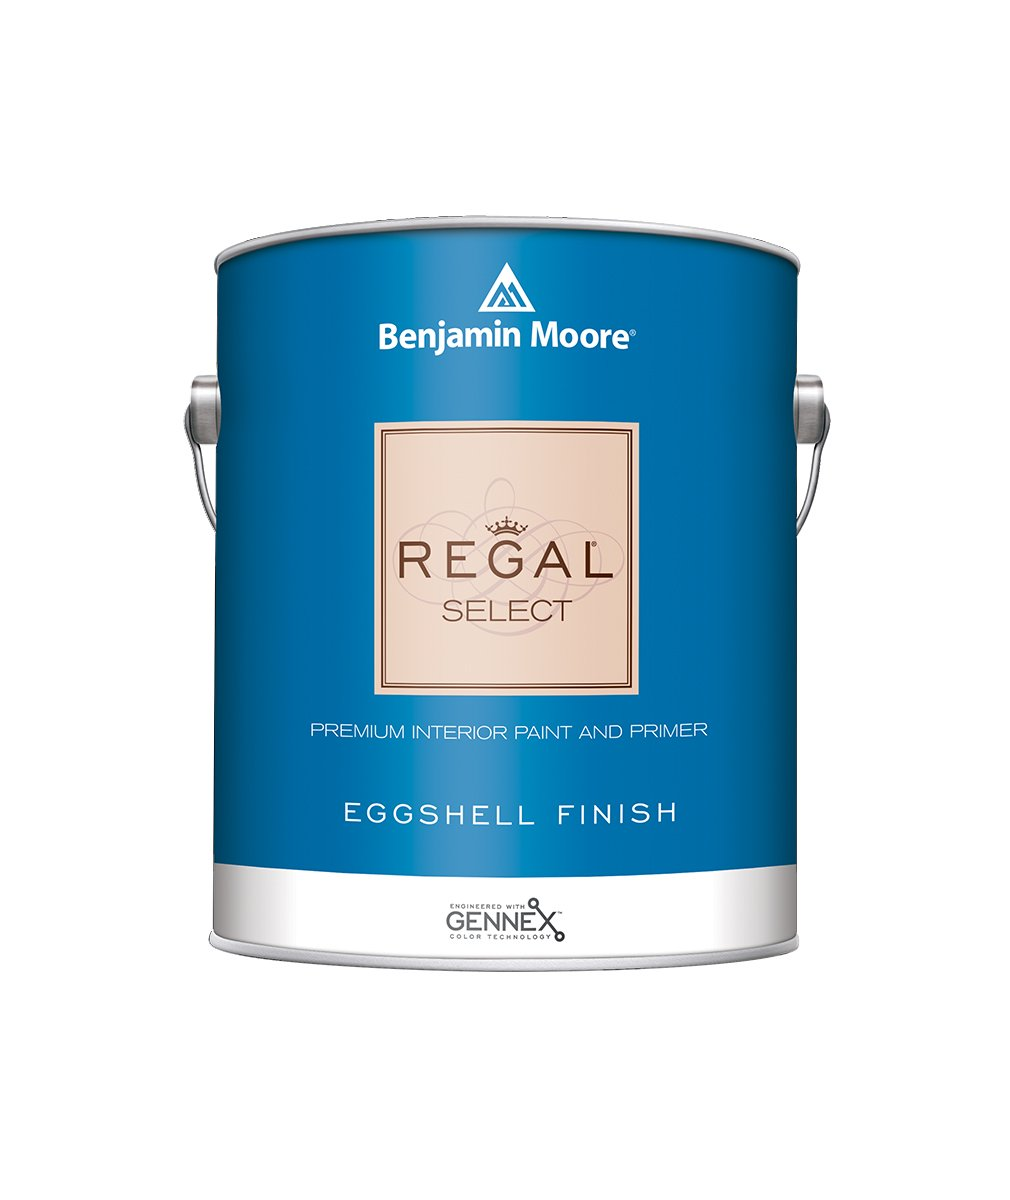 Benjamin Moore Regal Select Eggshell Paint available at Catalina Paints.